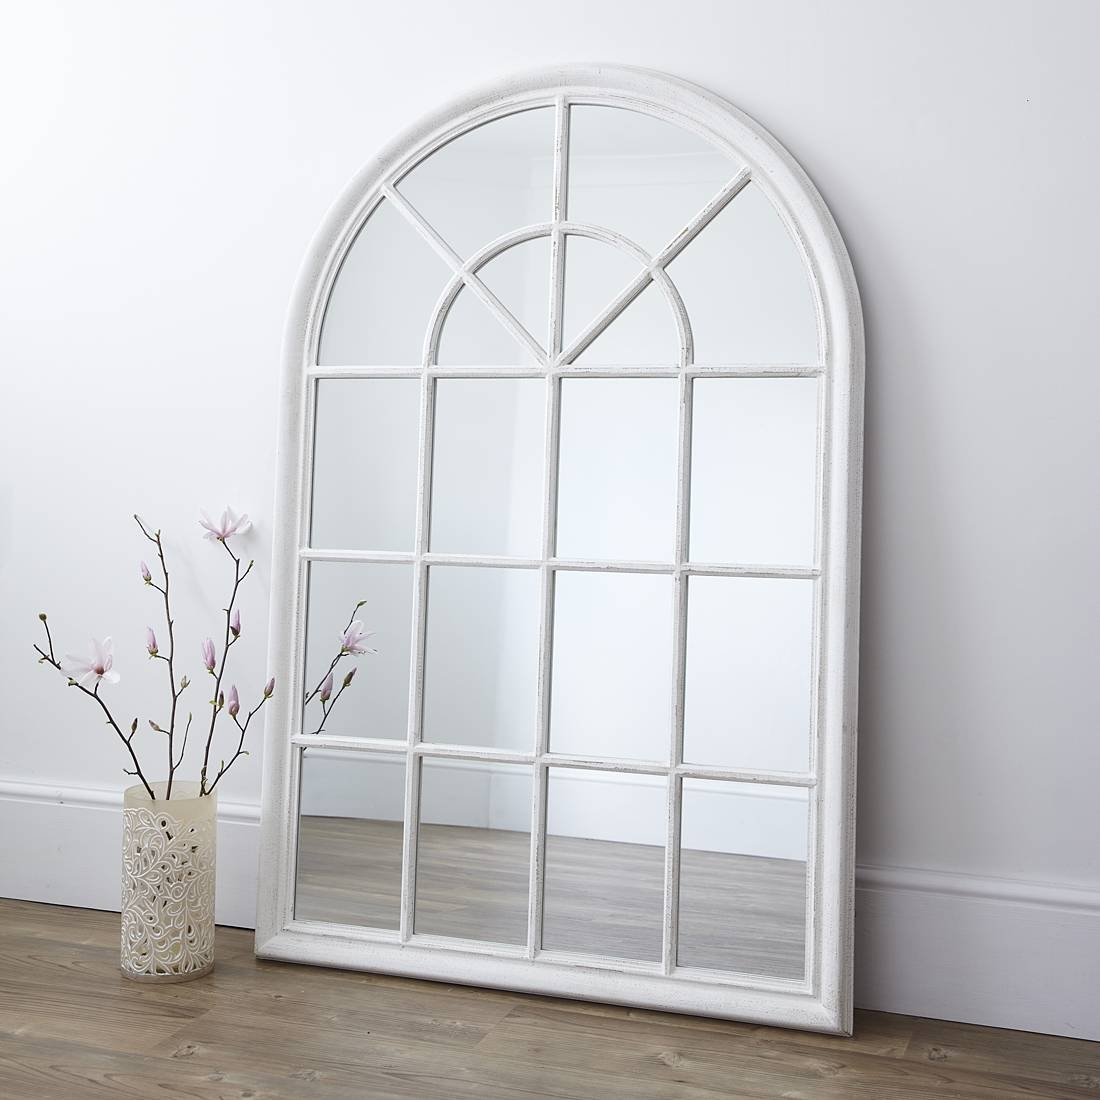 White Arched Window Wall Mirror – Primrose & Plum For Arched Wall Mirrors (View 3 of 15)